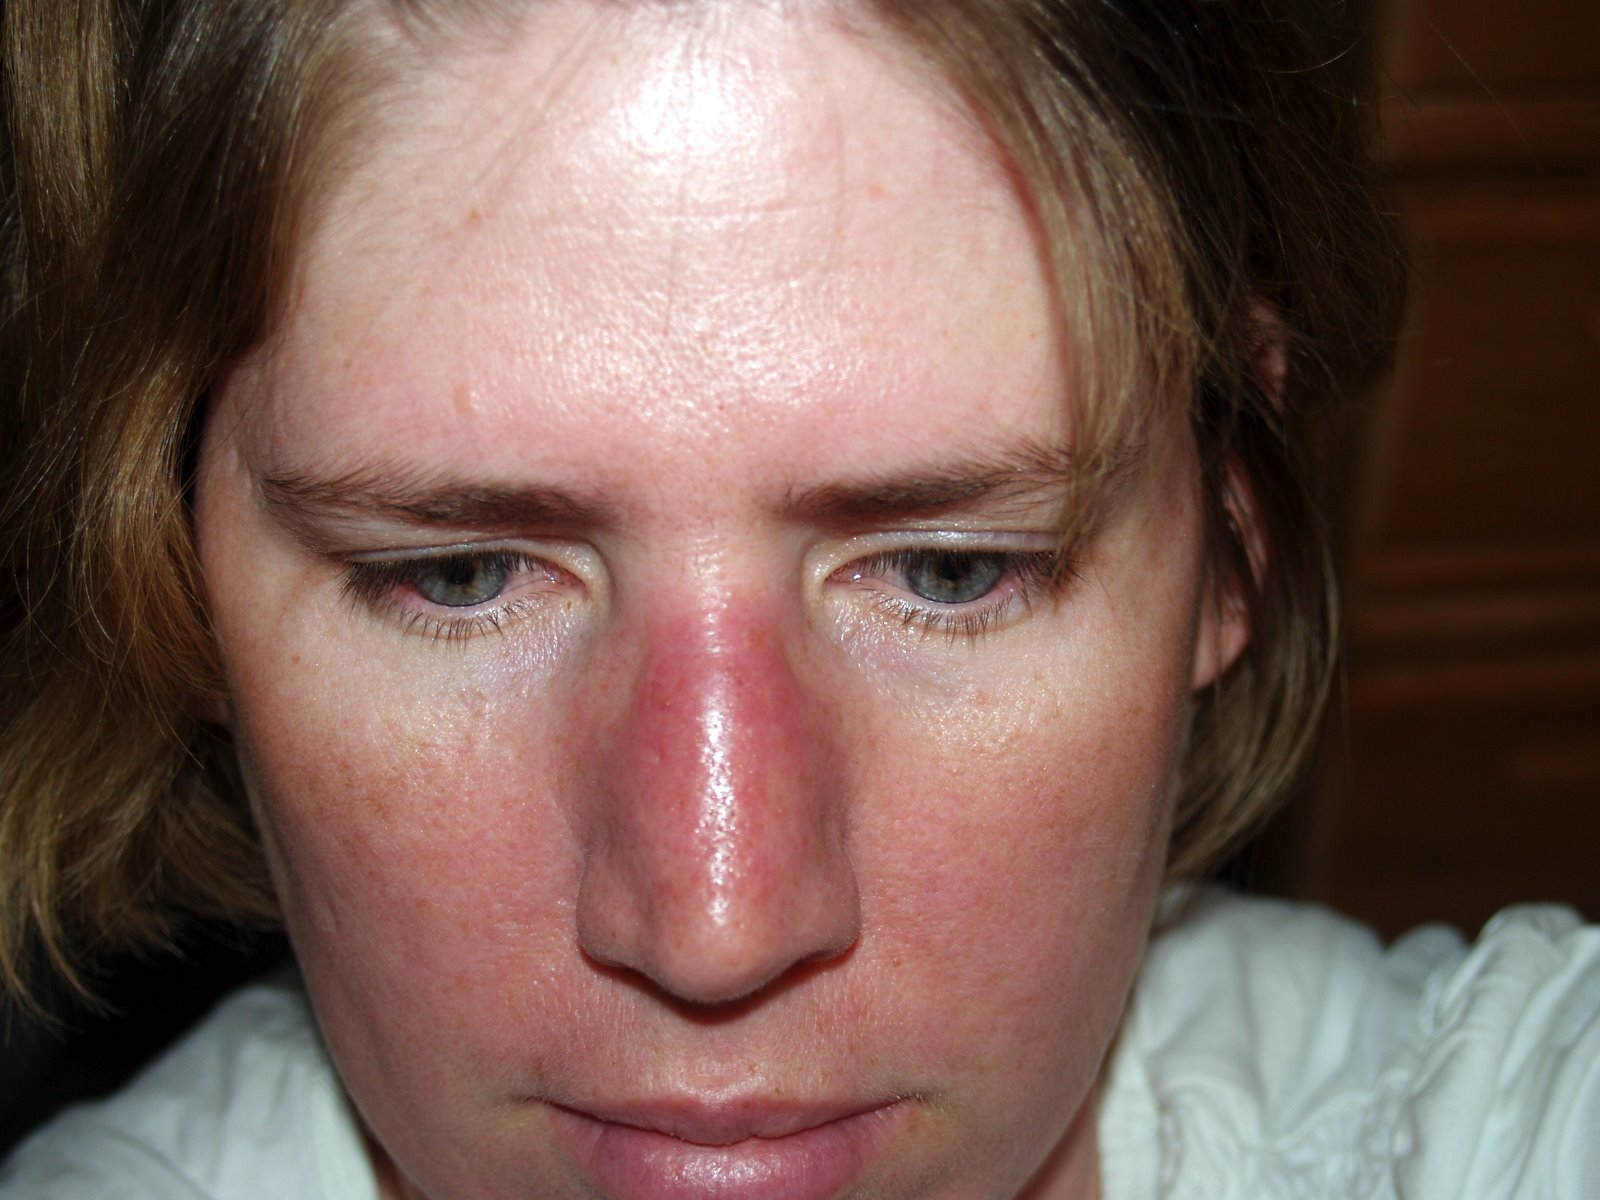 Treatment of facial cellulitis consider